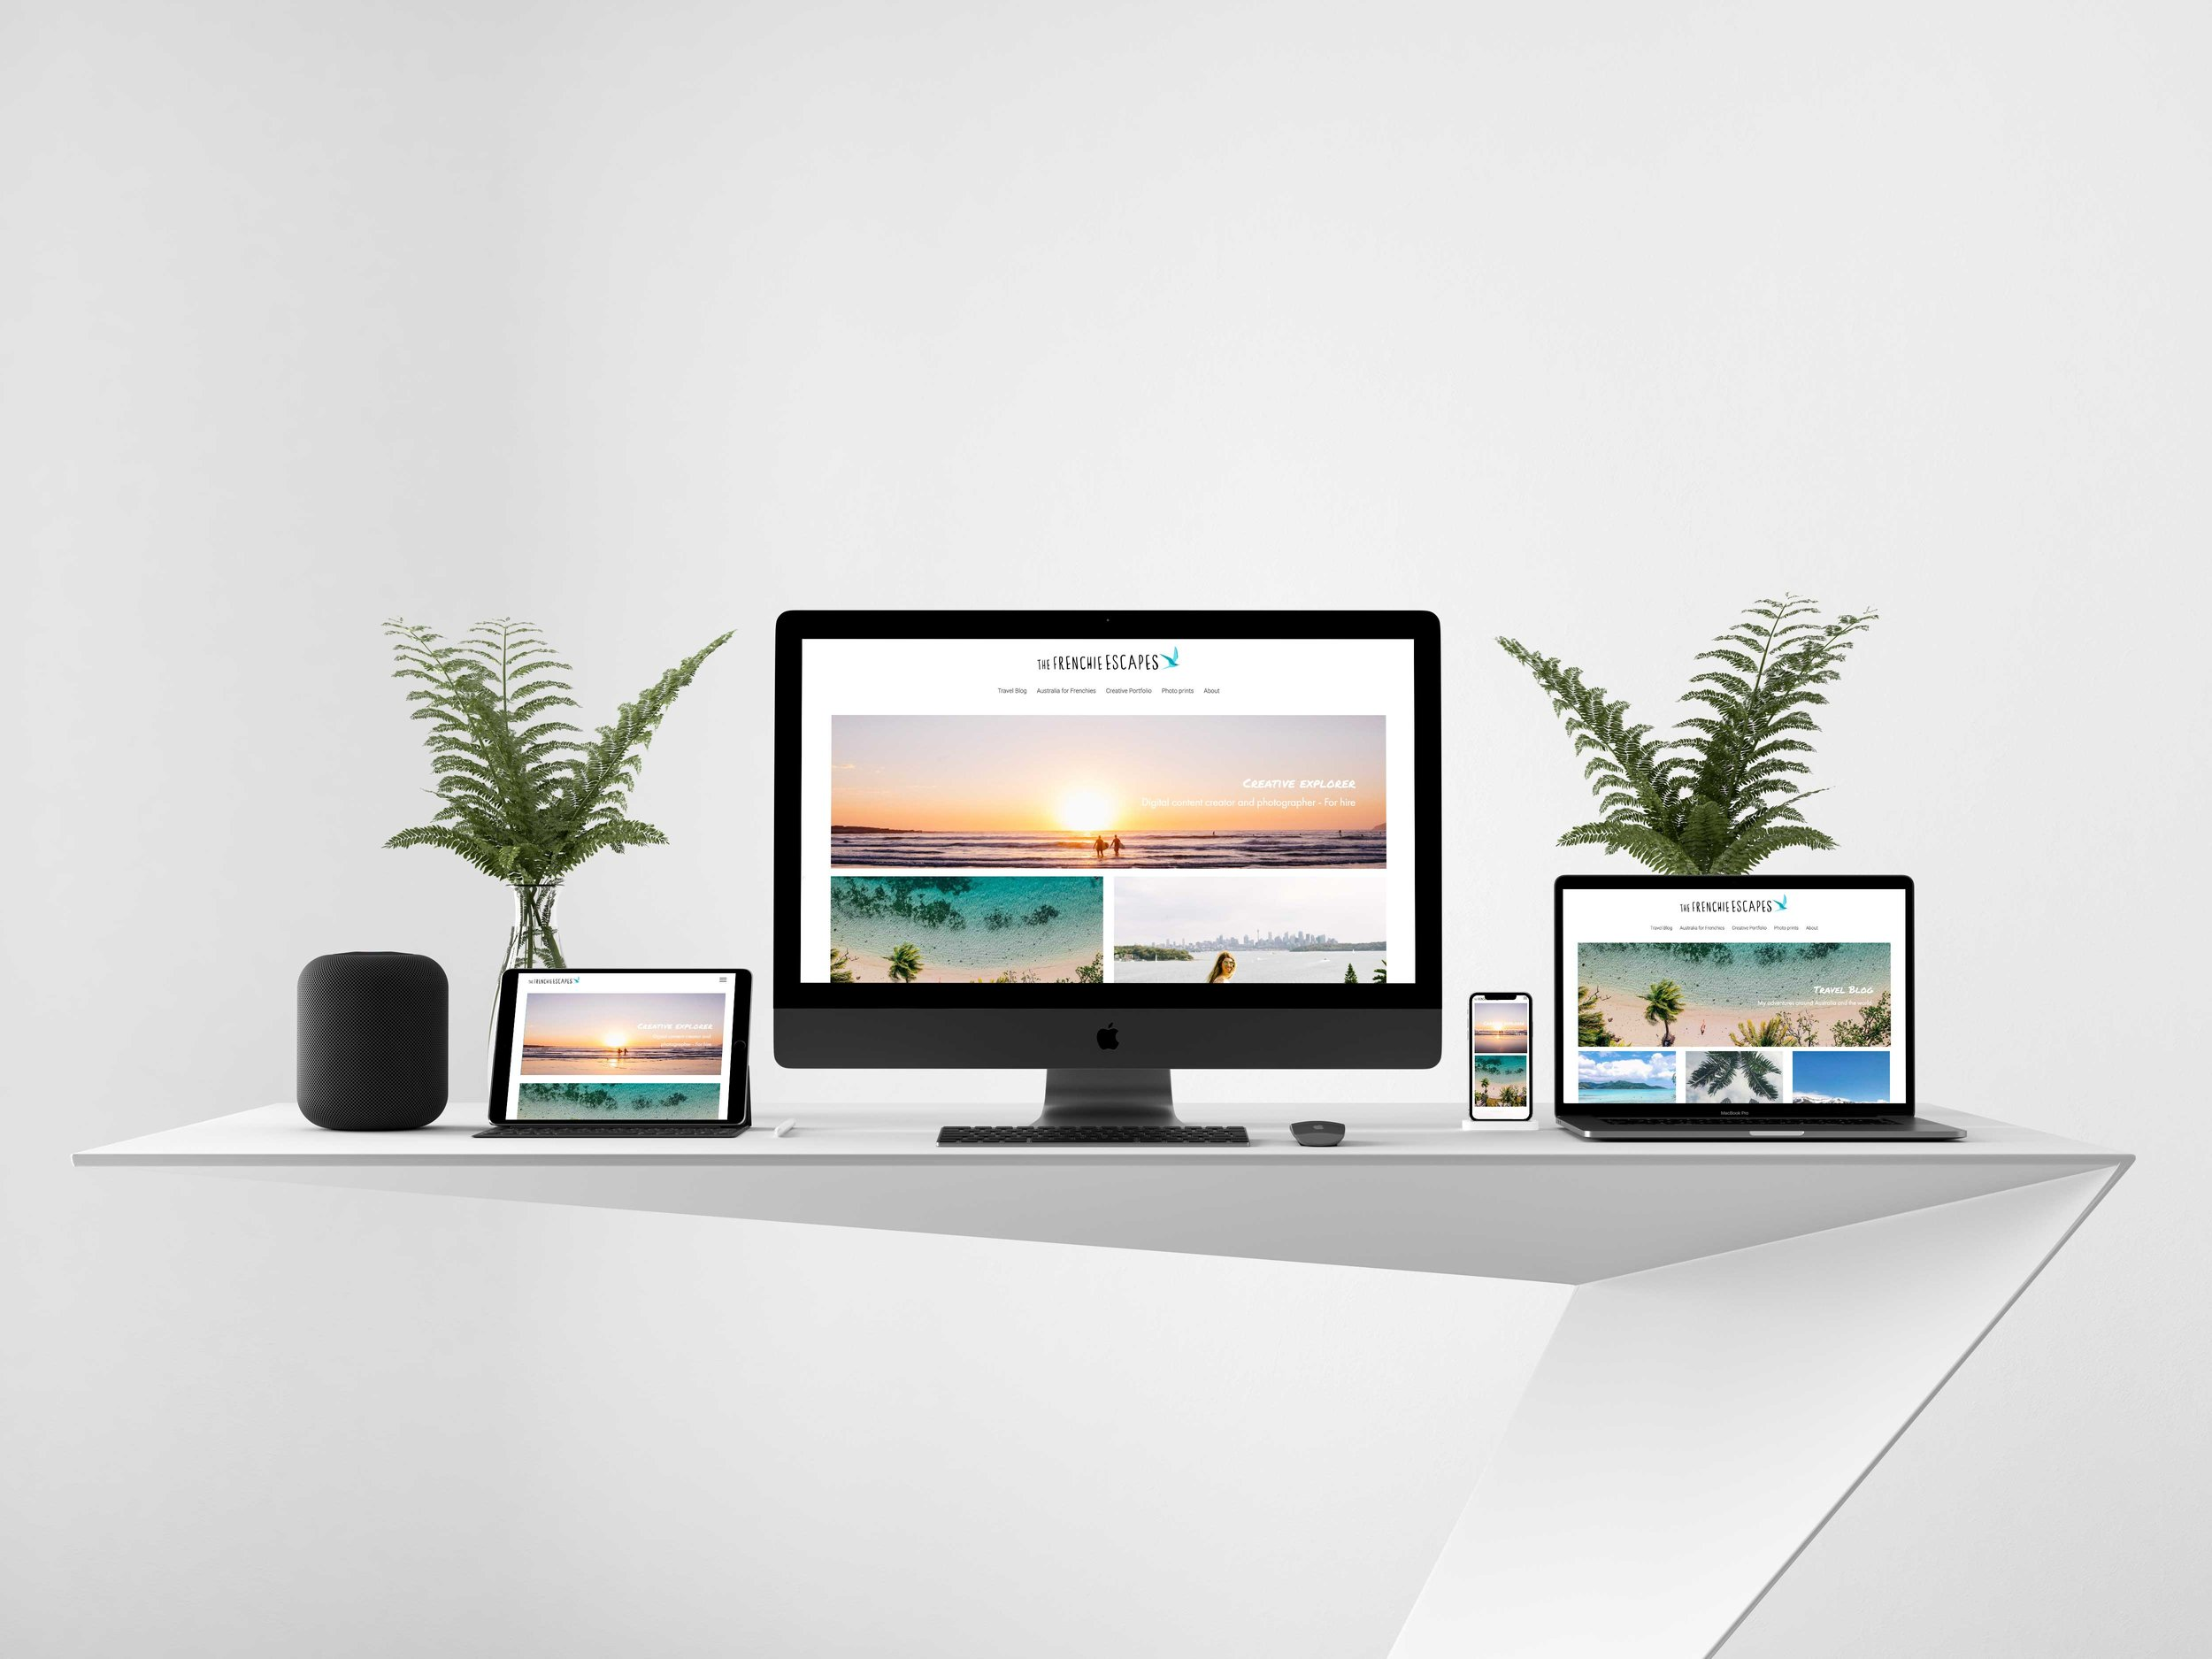 Originally built on Wordpress, I transitionned my own website to Squarespace a few years ago. After a first design, I then decided to re-design the whole website to a new clearer and nicer layout. See more here:  https://thefrenchieescapes.com